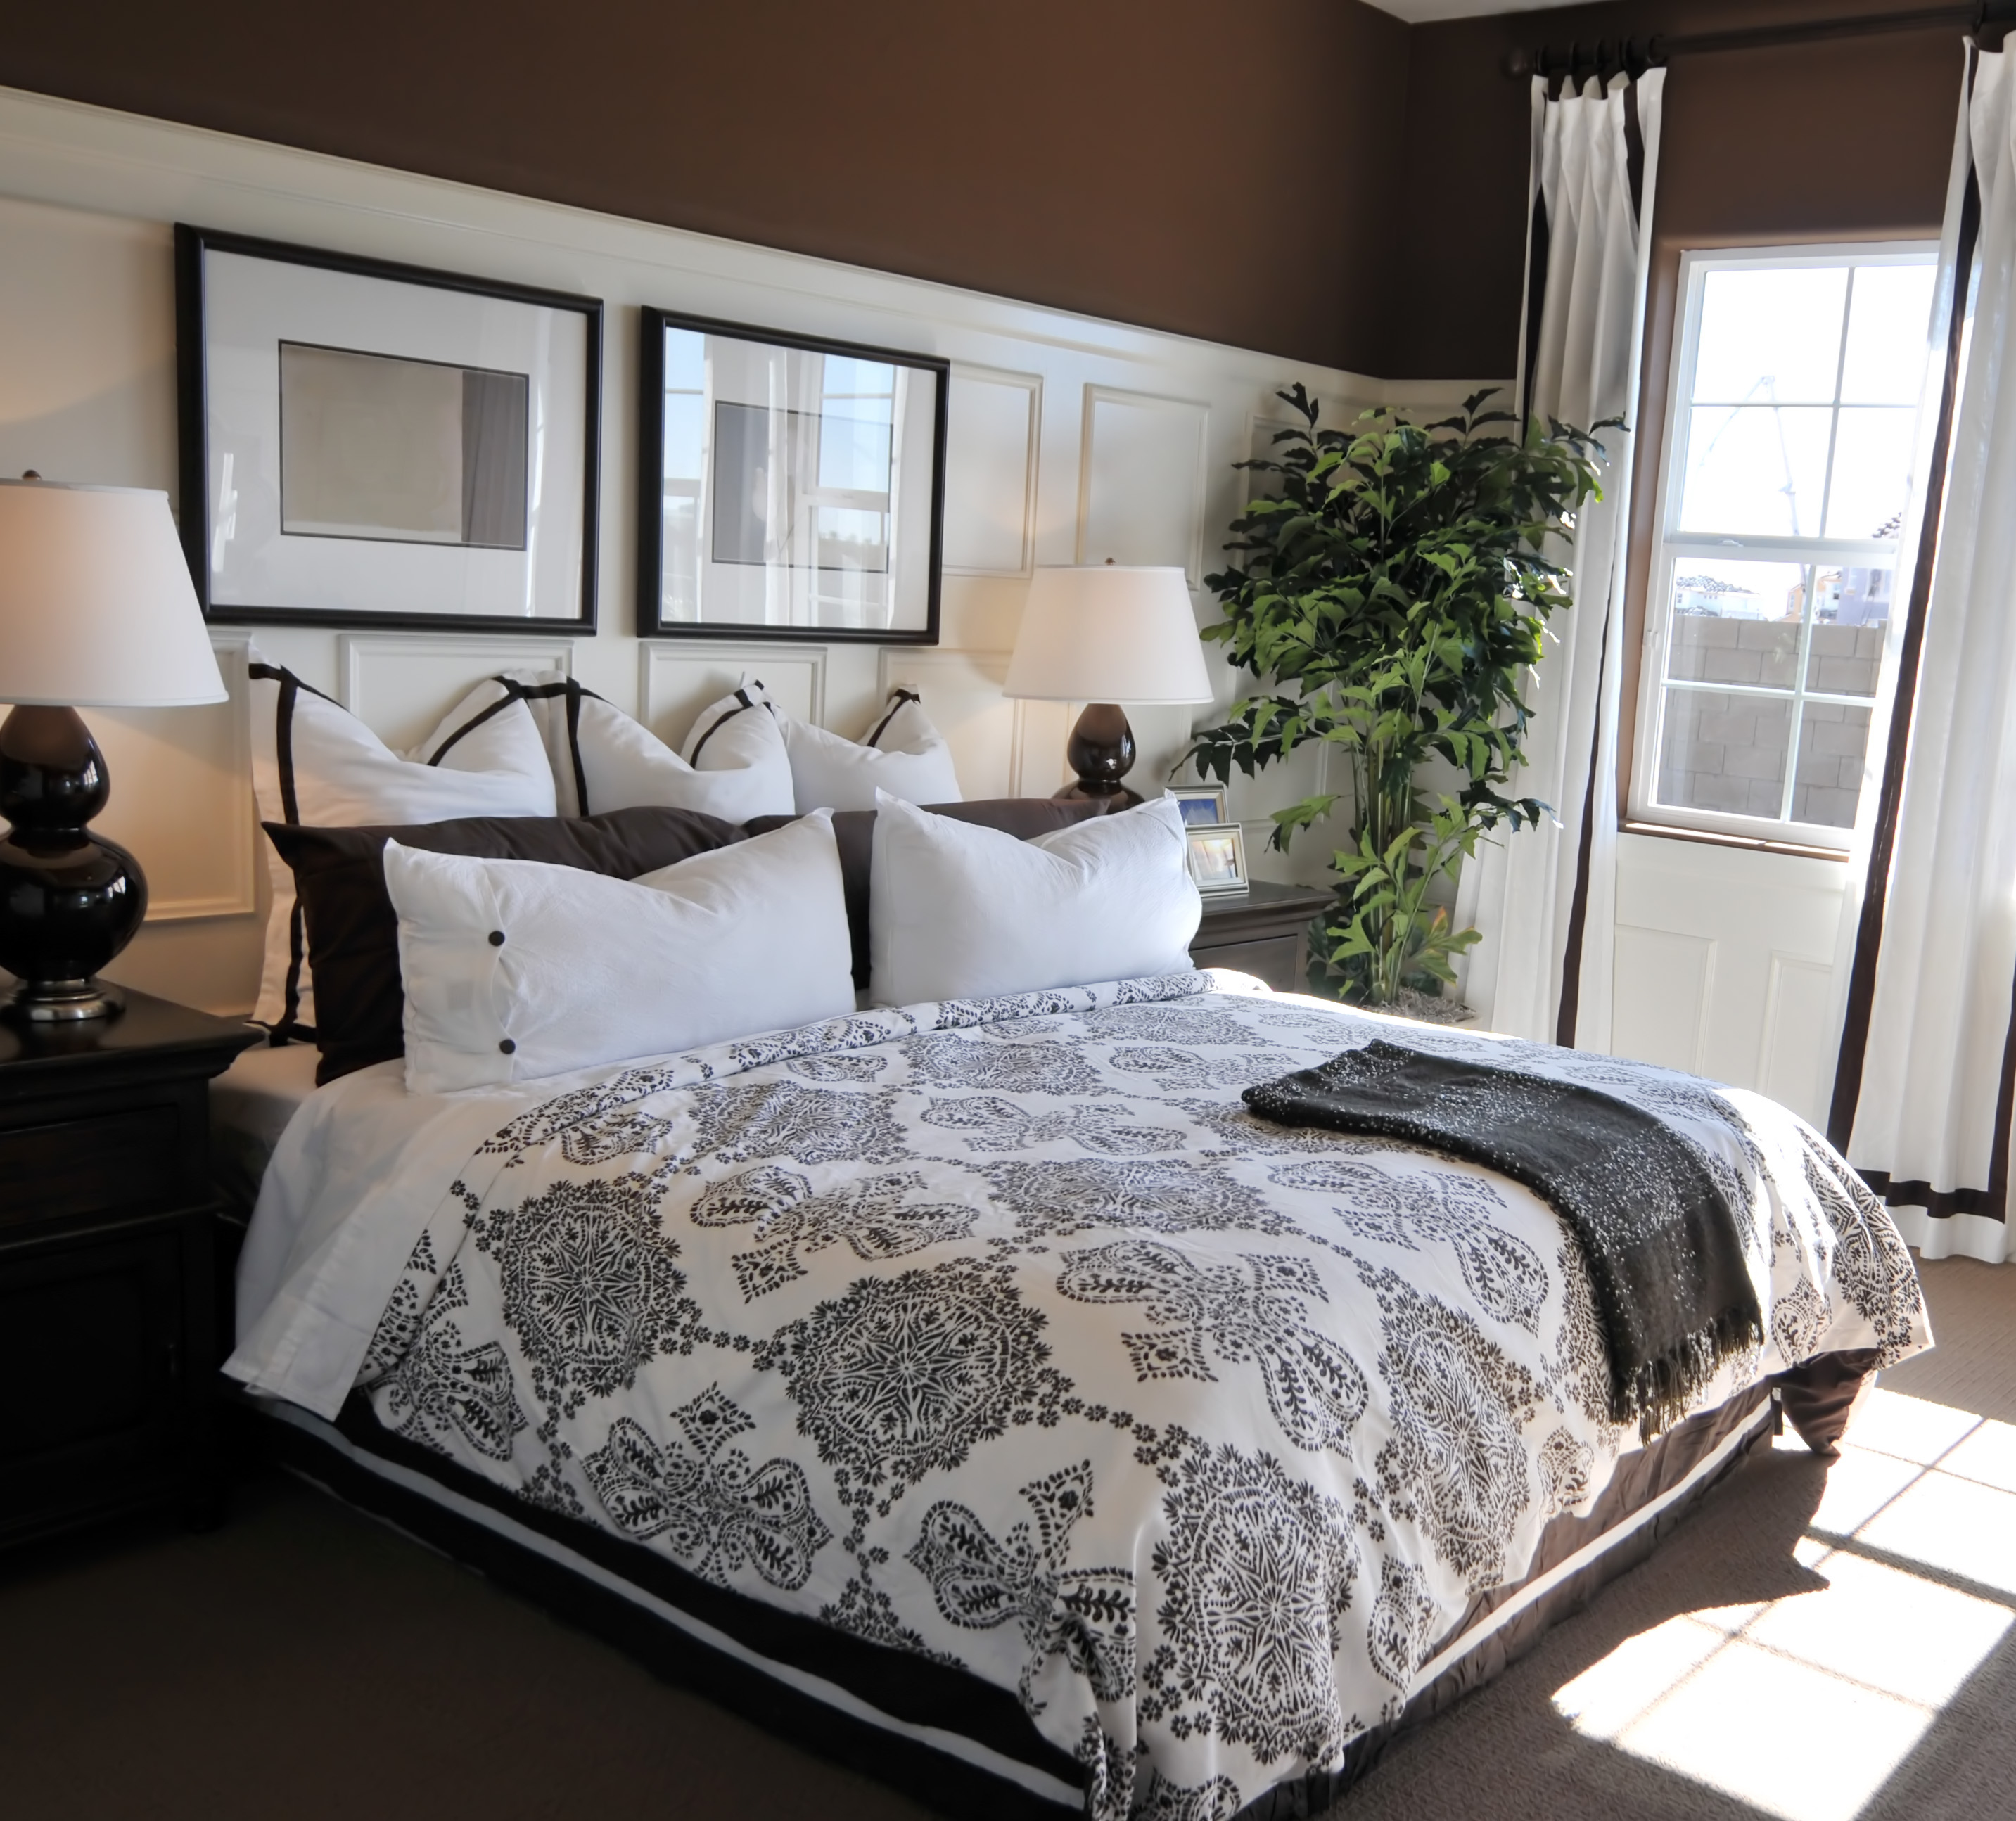 Pleasing Custom Bedroom Panels Drawn Largest Home Design Picture Inspirations Pitcheantrous